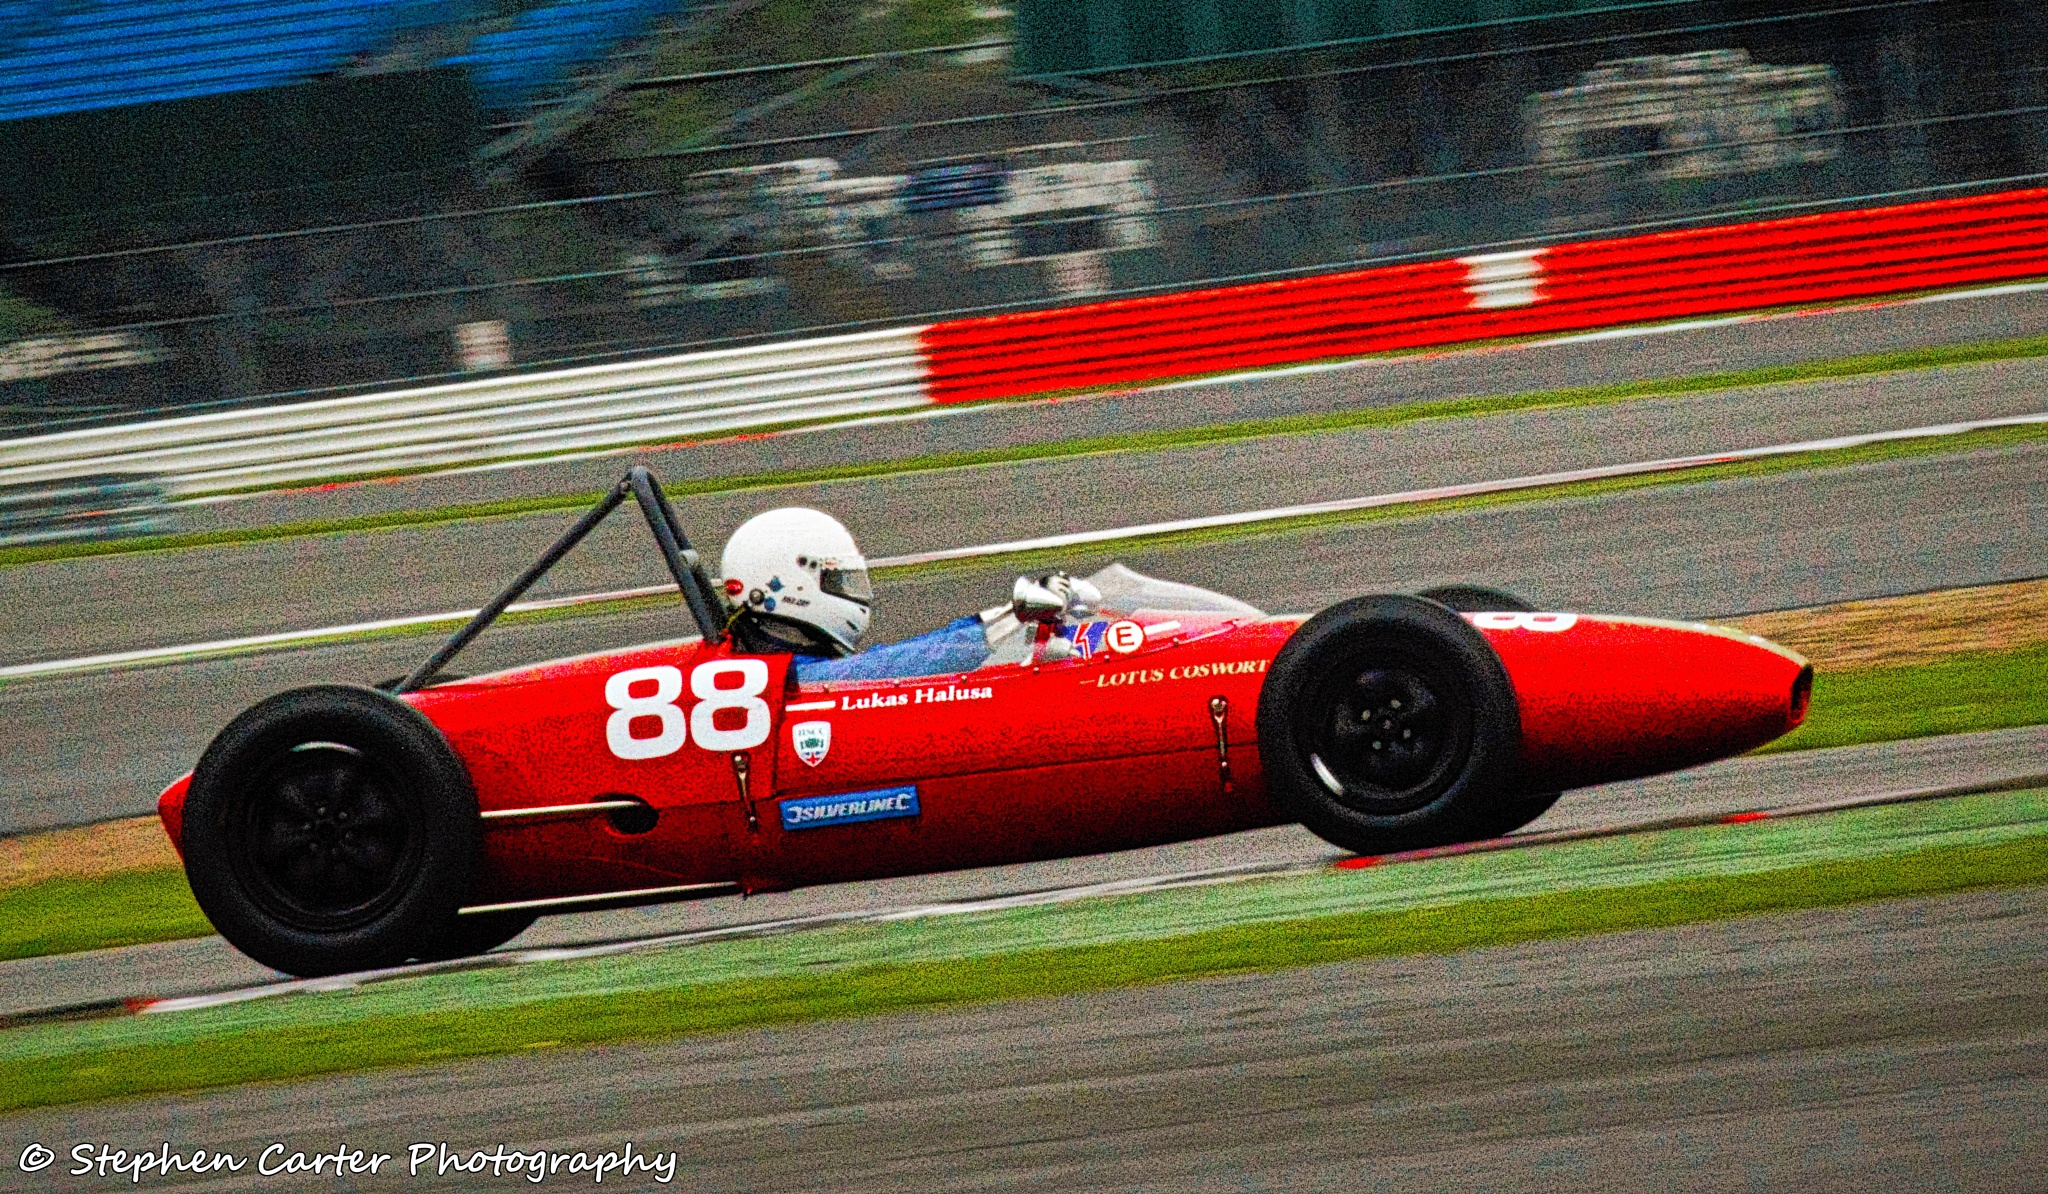 HSCC Formula Junior - Lotus Cosworth #88 by Stephen Carter Photography